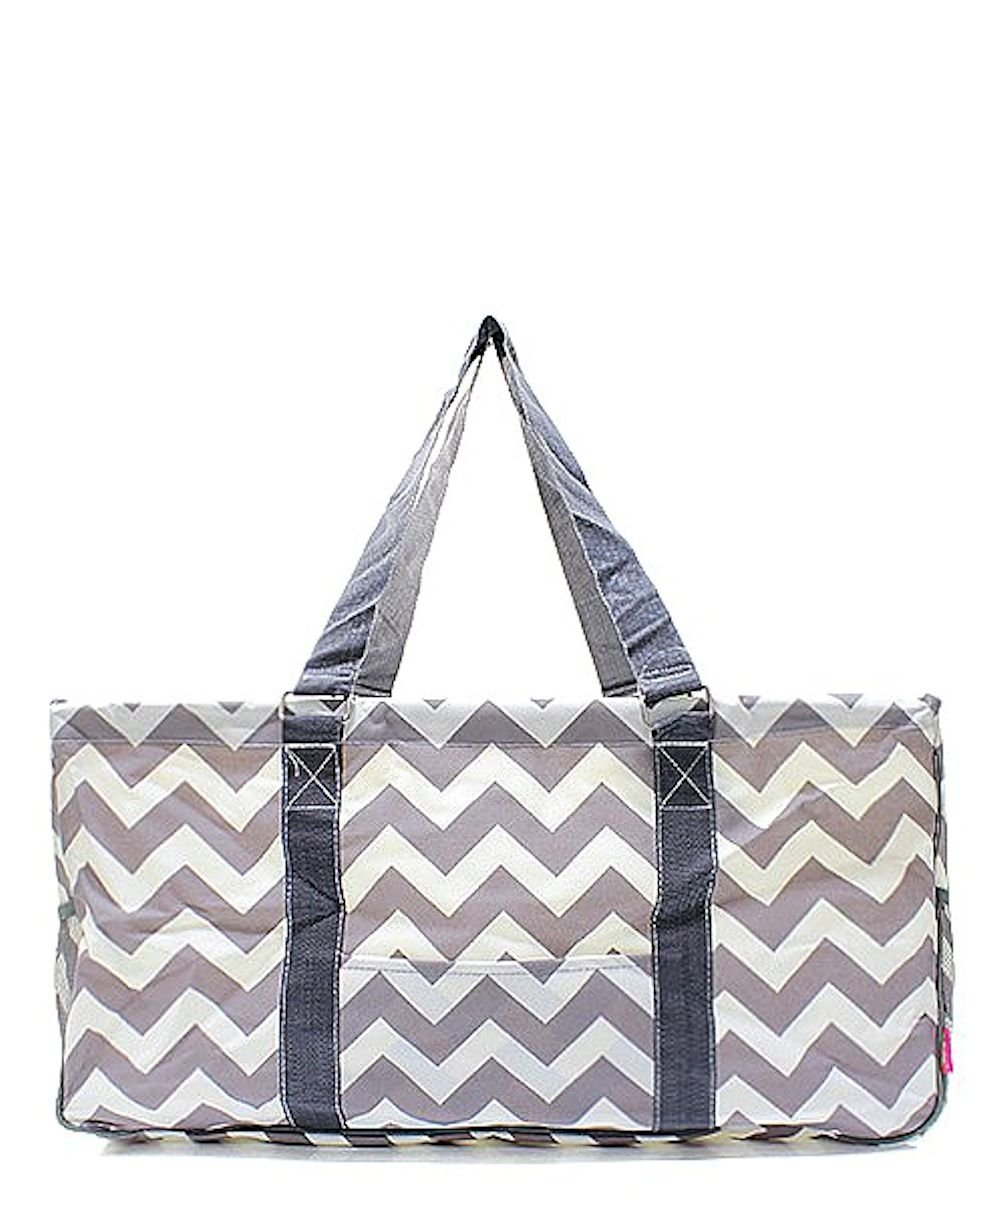 N. Gil All Purpose Open Top 23 Classic Extra Large Utility Tote Bag (Anchor Navy Blue) 10461108